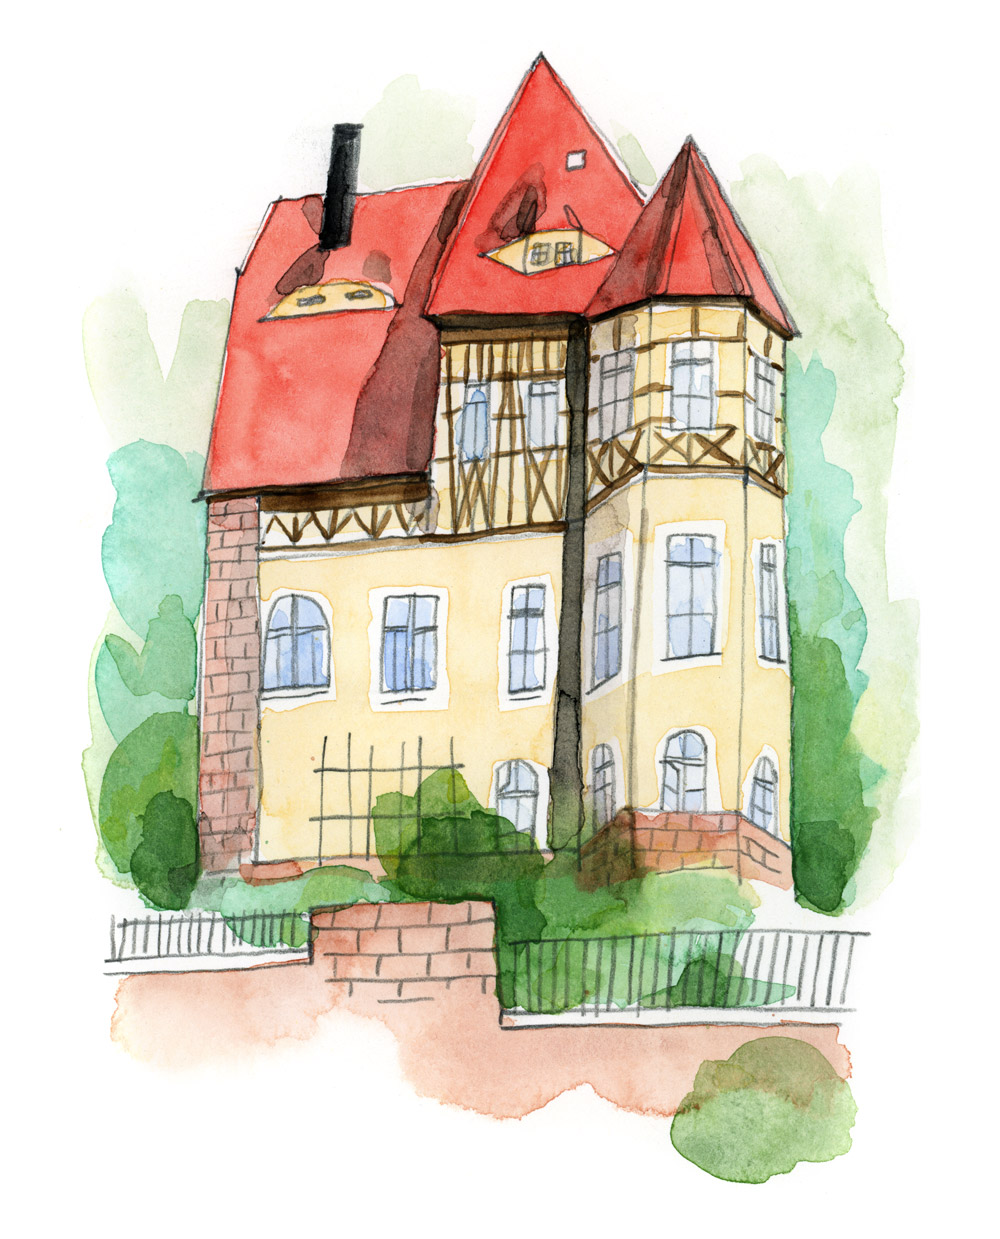 watercolor drawing of a house